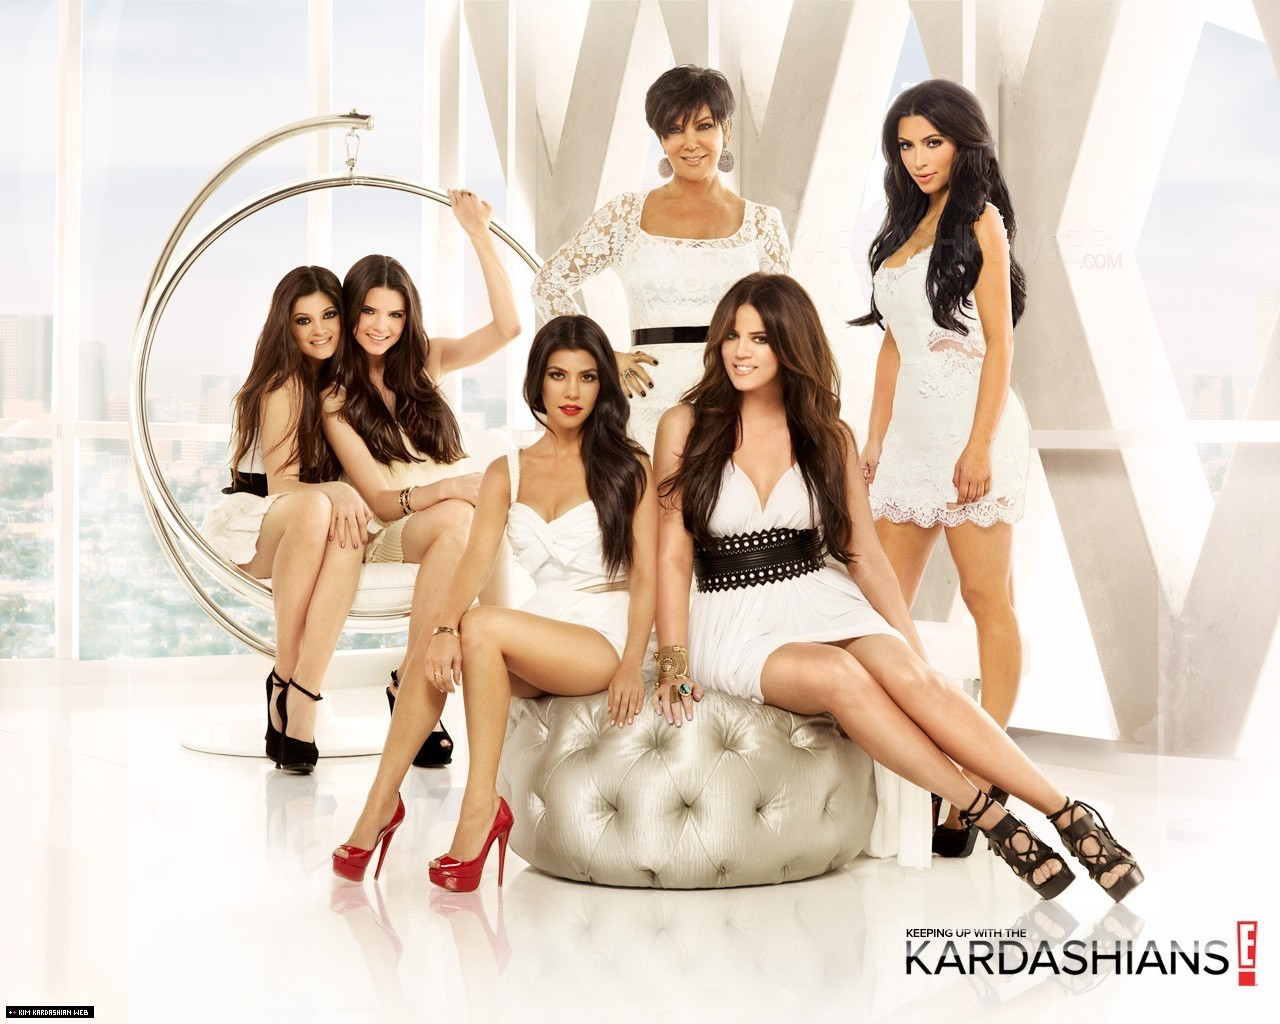 RENAISZANCE songs featured on season finale of Keeping Up With The Kardashians!